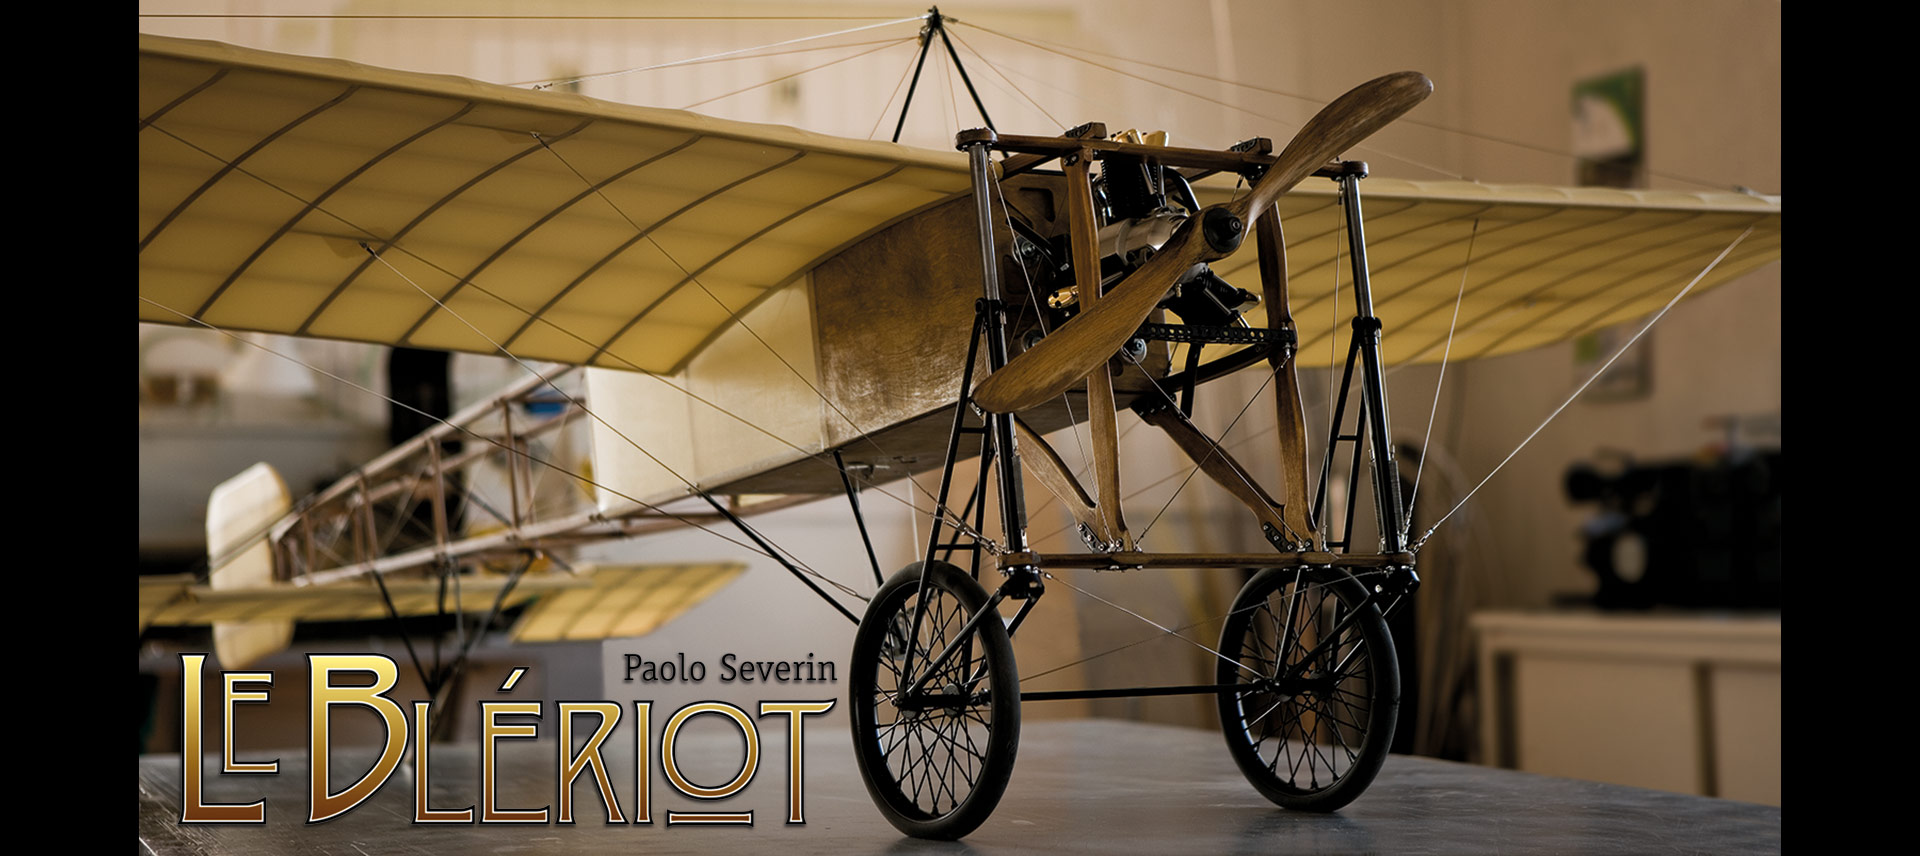 Paolo Severin Bleriot